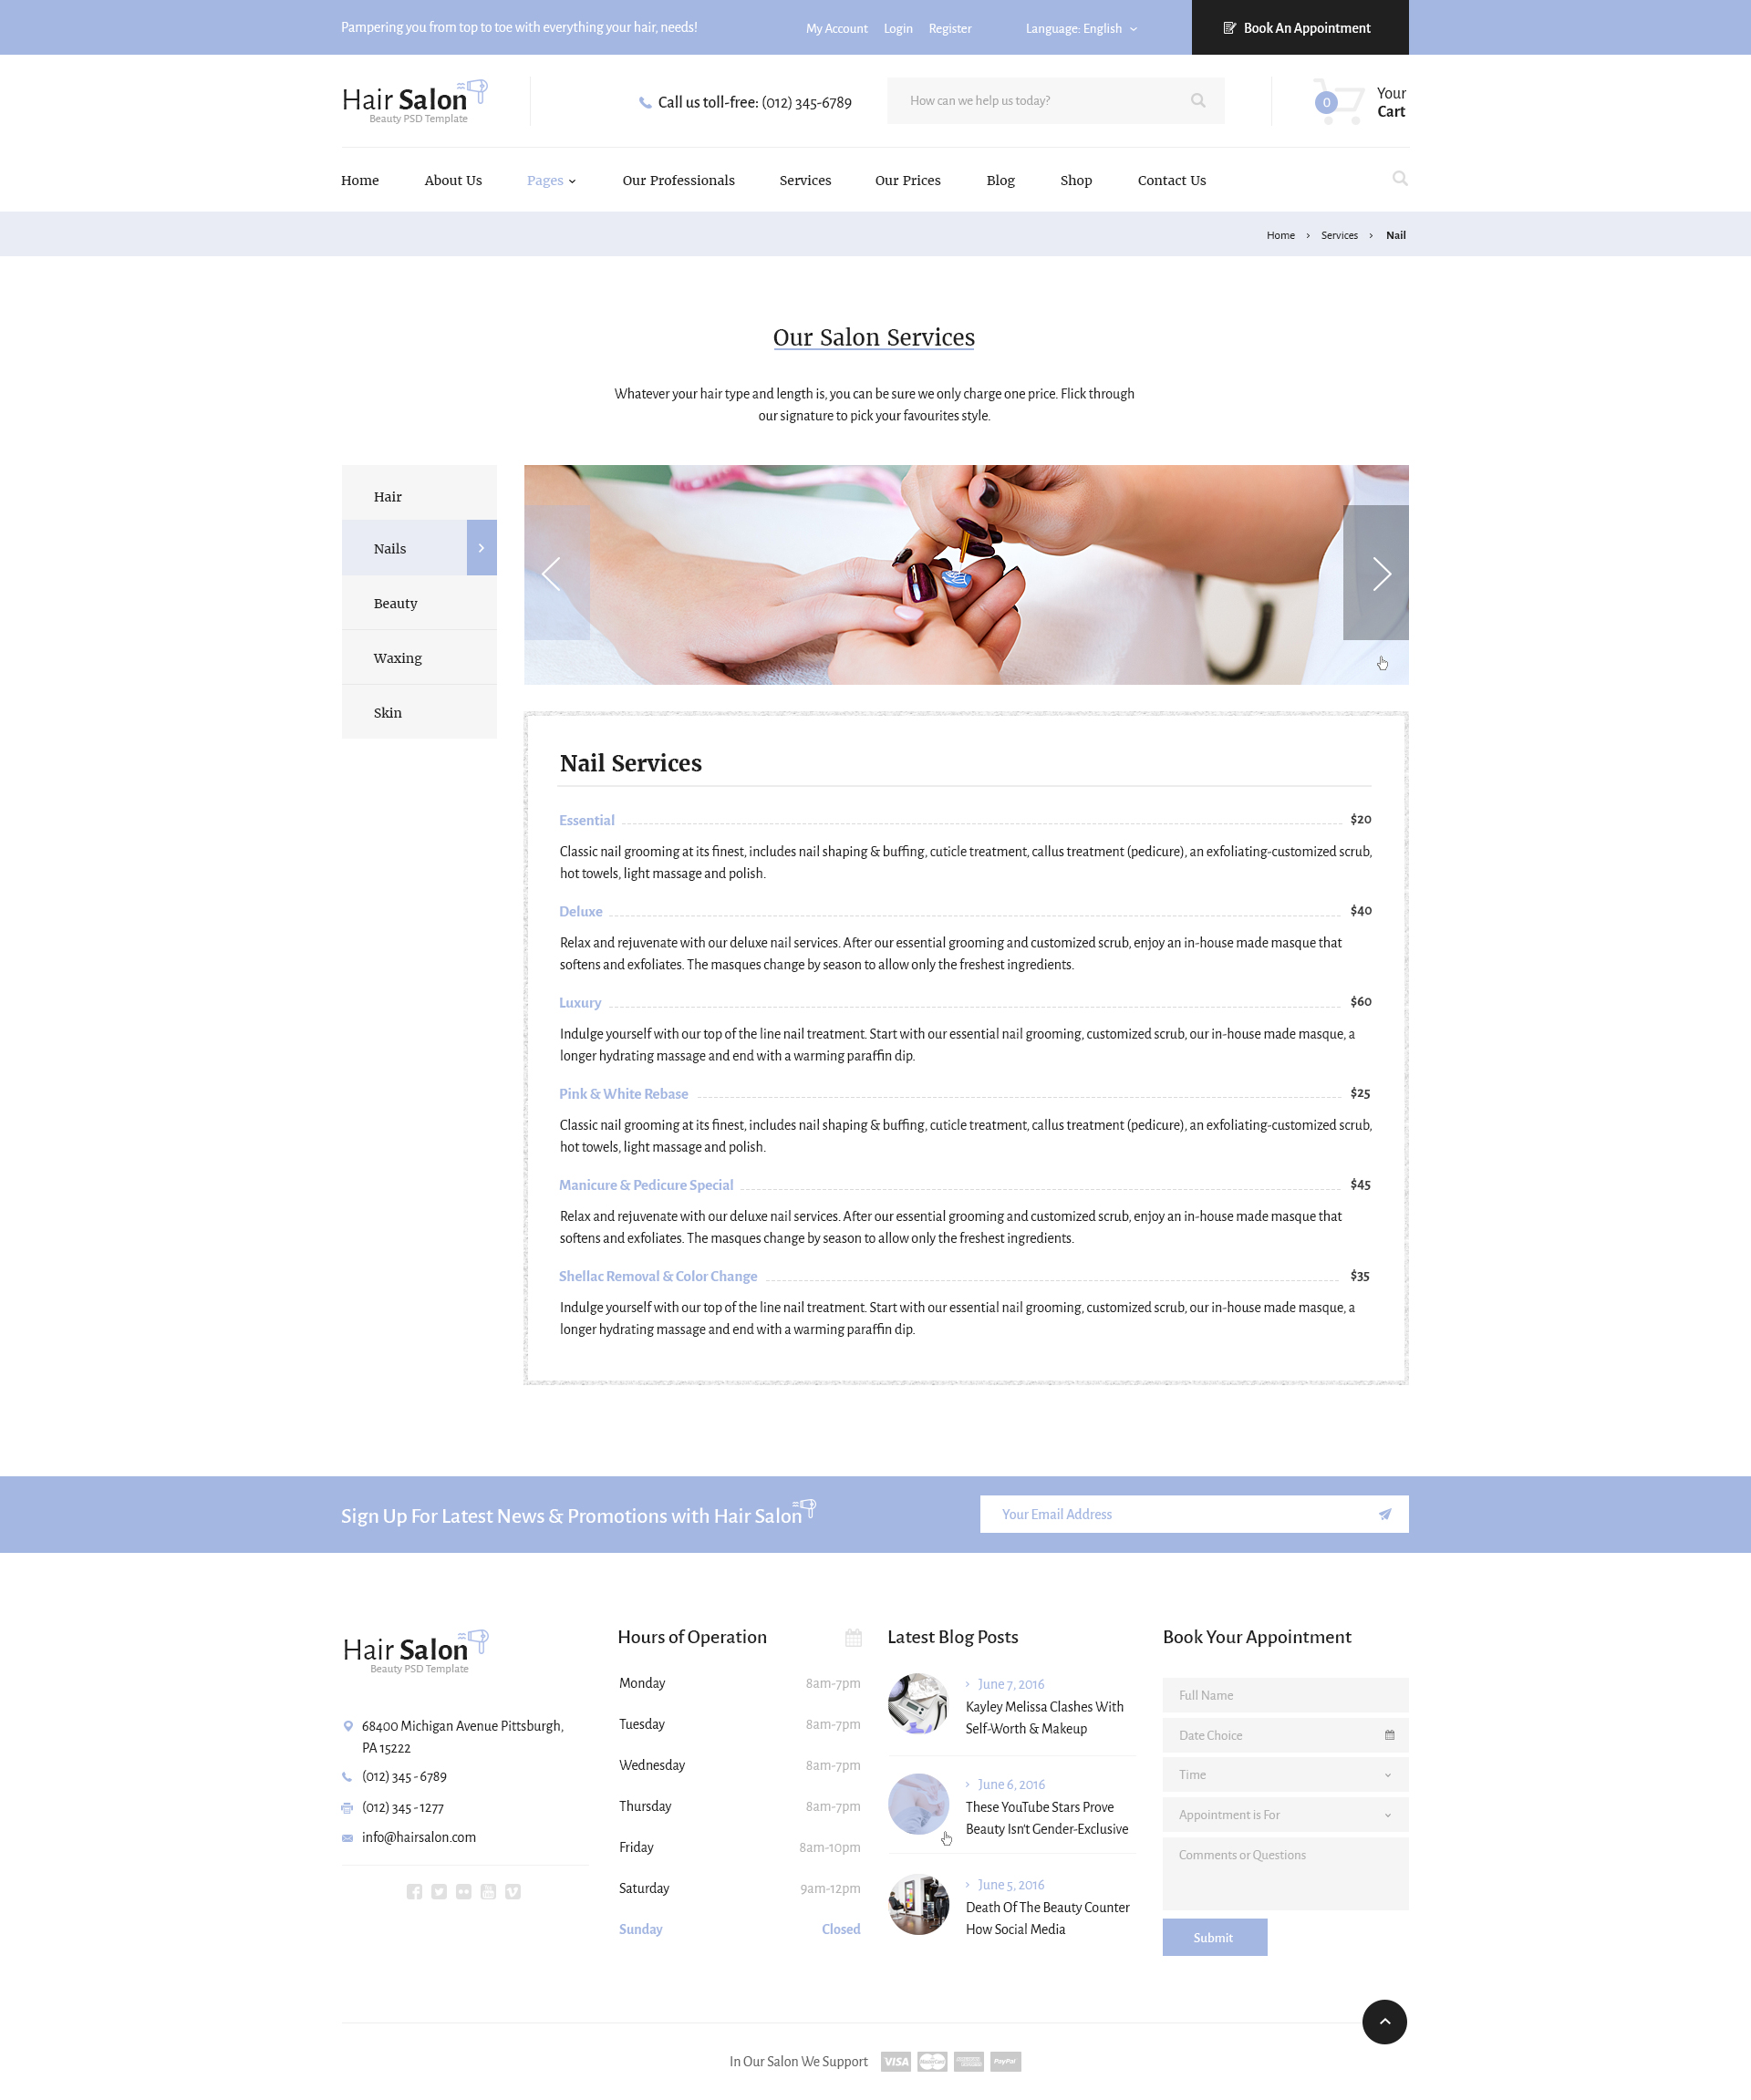 Unusual 100 Free Resume Builder Thick 1099 Agreement Template Clean 120mm Fan Template 15 Year Old First Resume Old 185 Powerful Resume Verbs Green18th Invitation Templates Hair Salon   Beauty PSD Template By Diadea3007 | ThemeForest